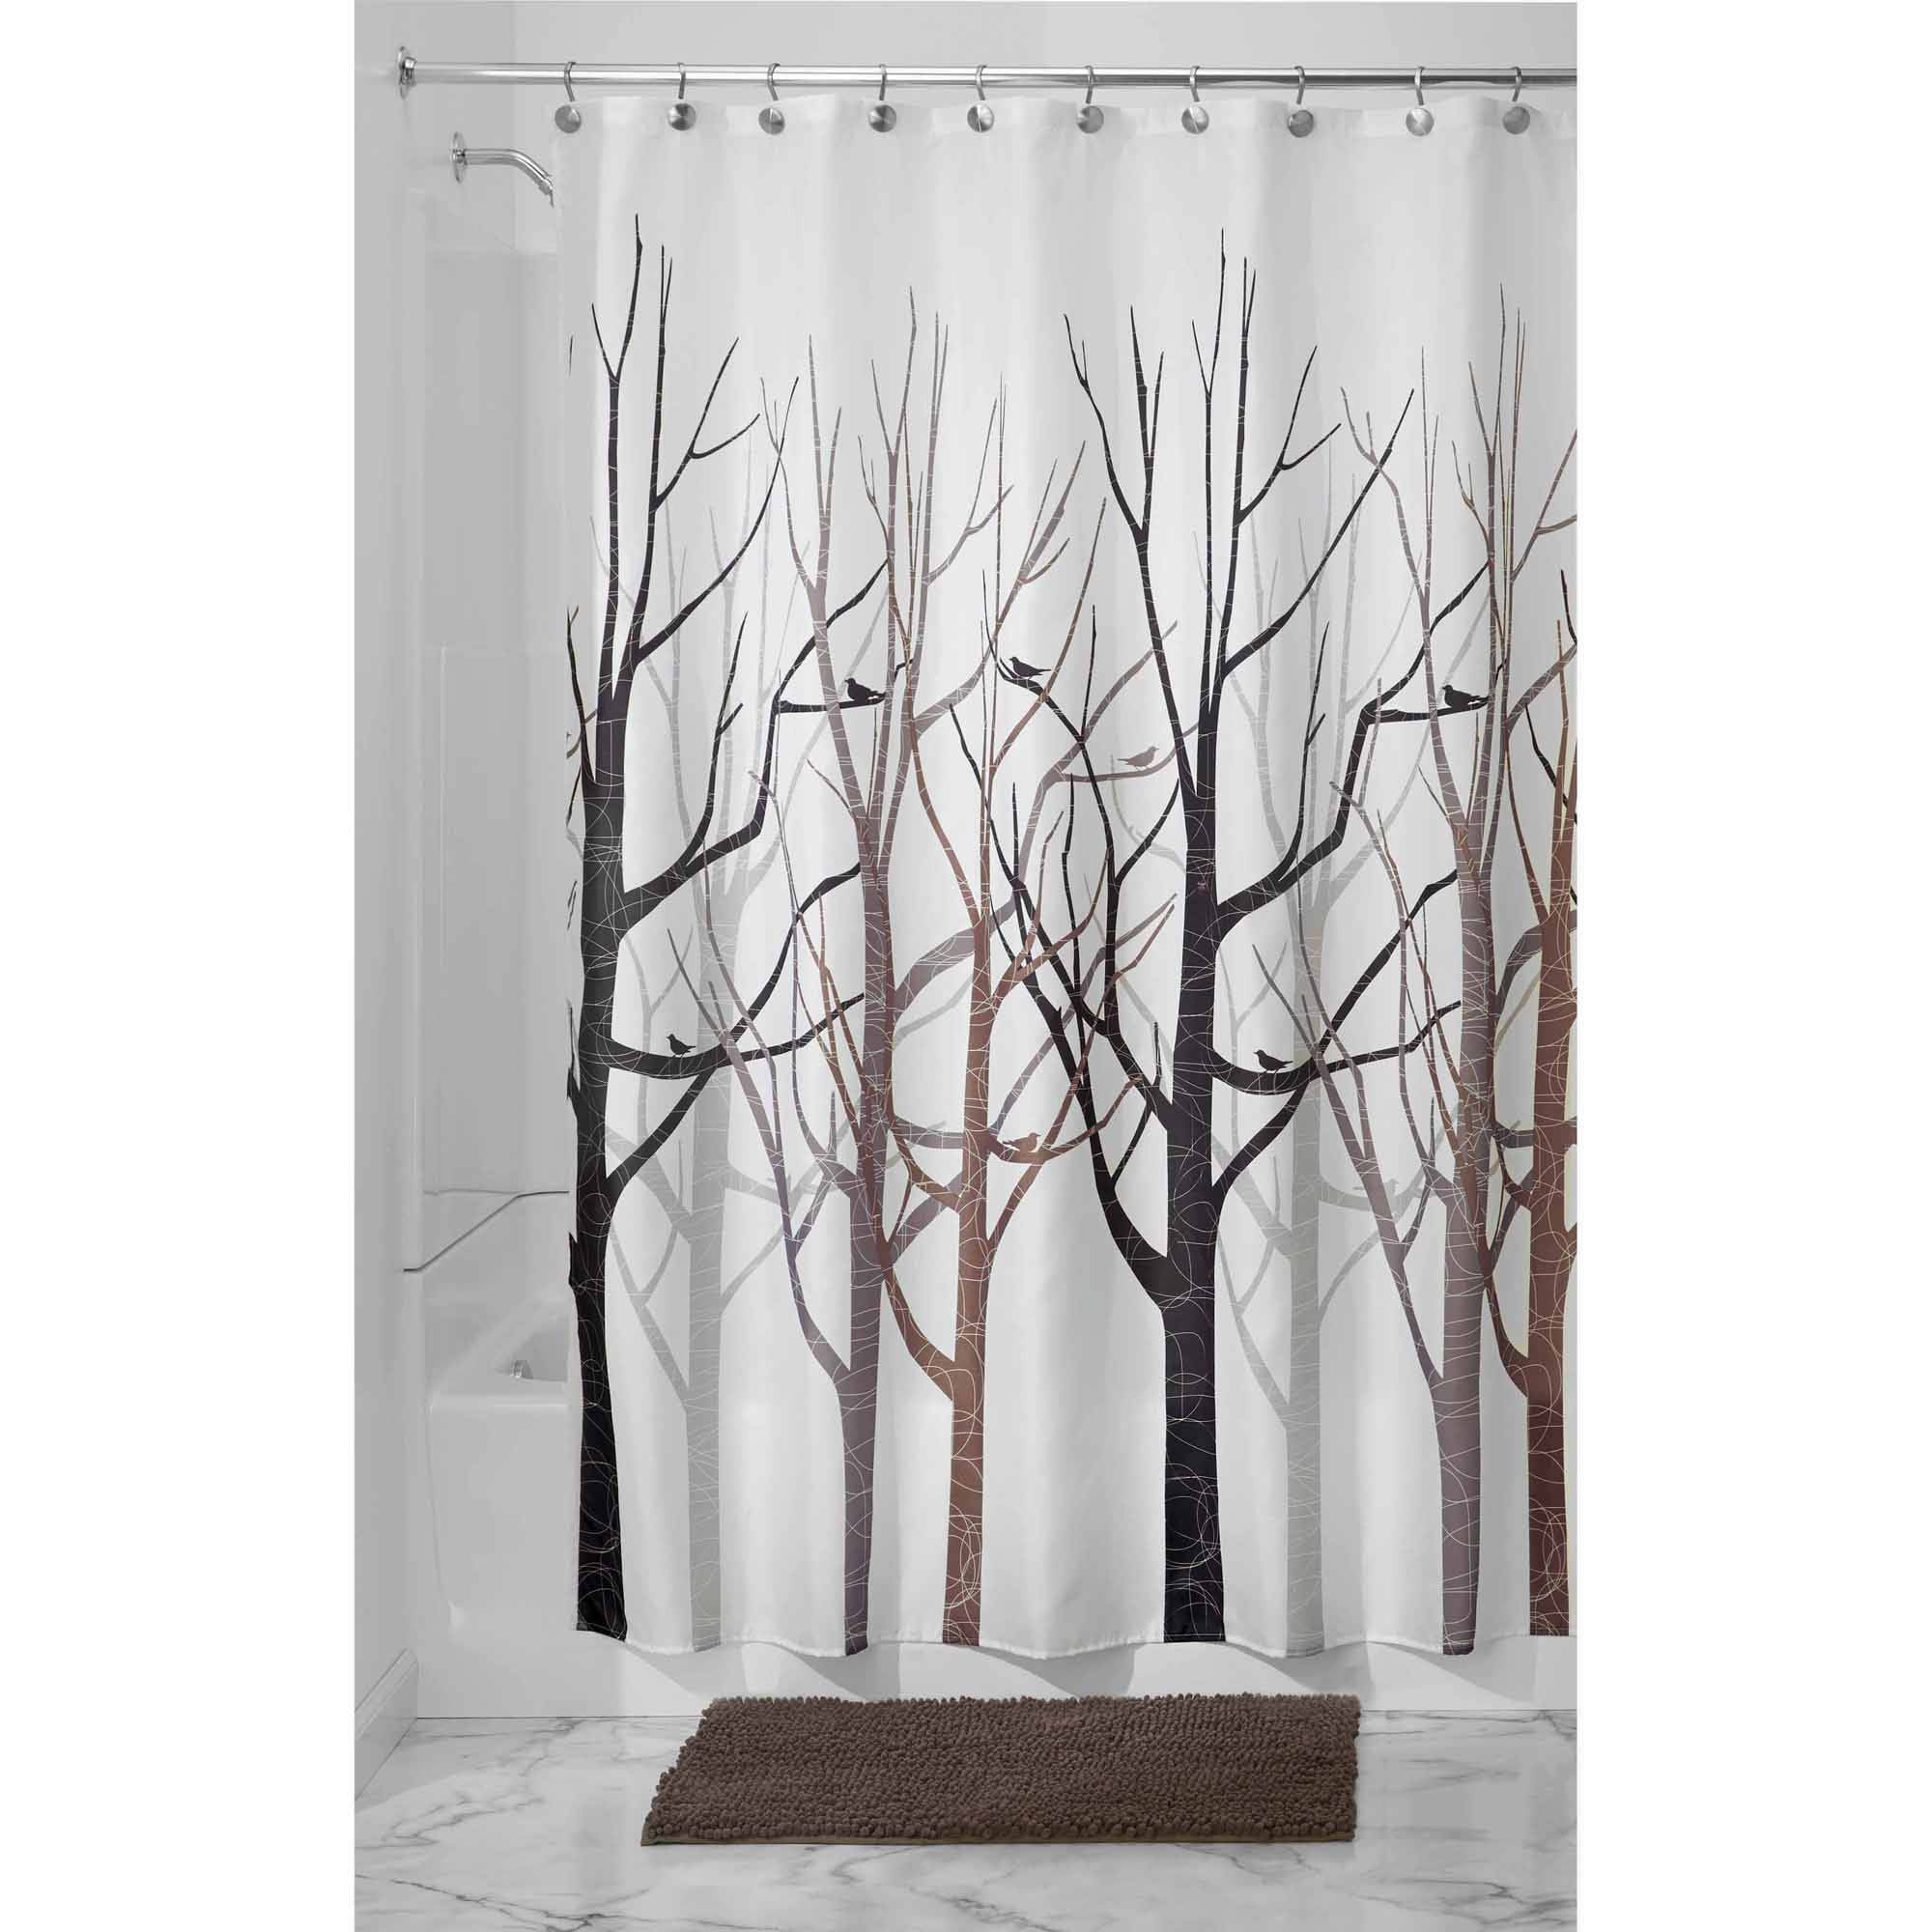 Interdesign Forest Fabric Shower Curtain Standard 72 X 72 Black Gray